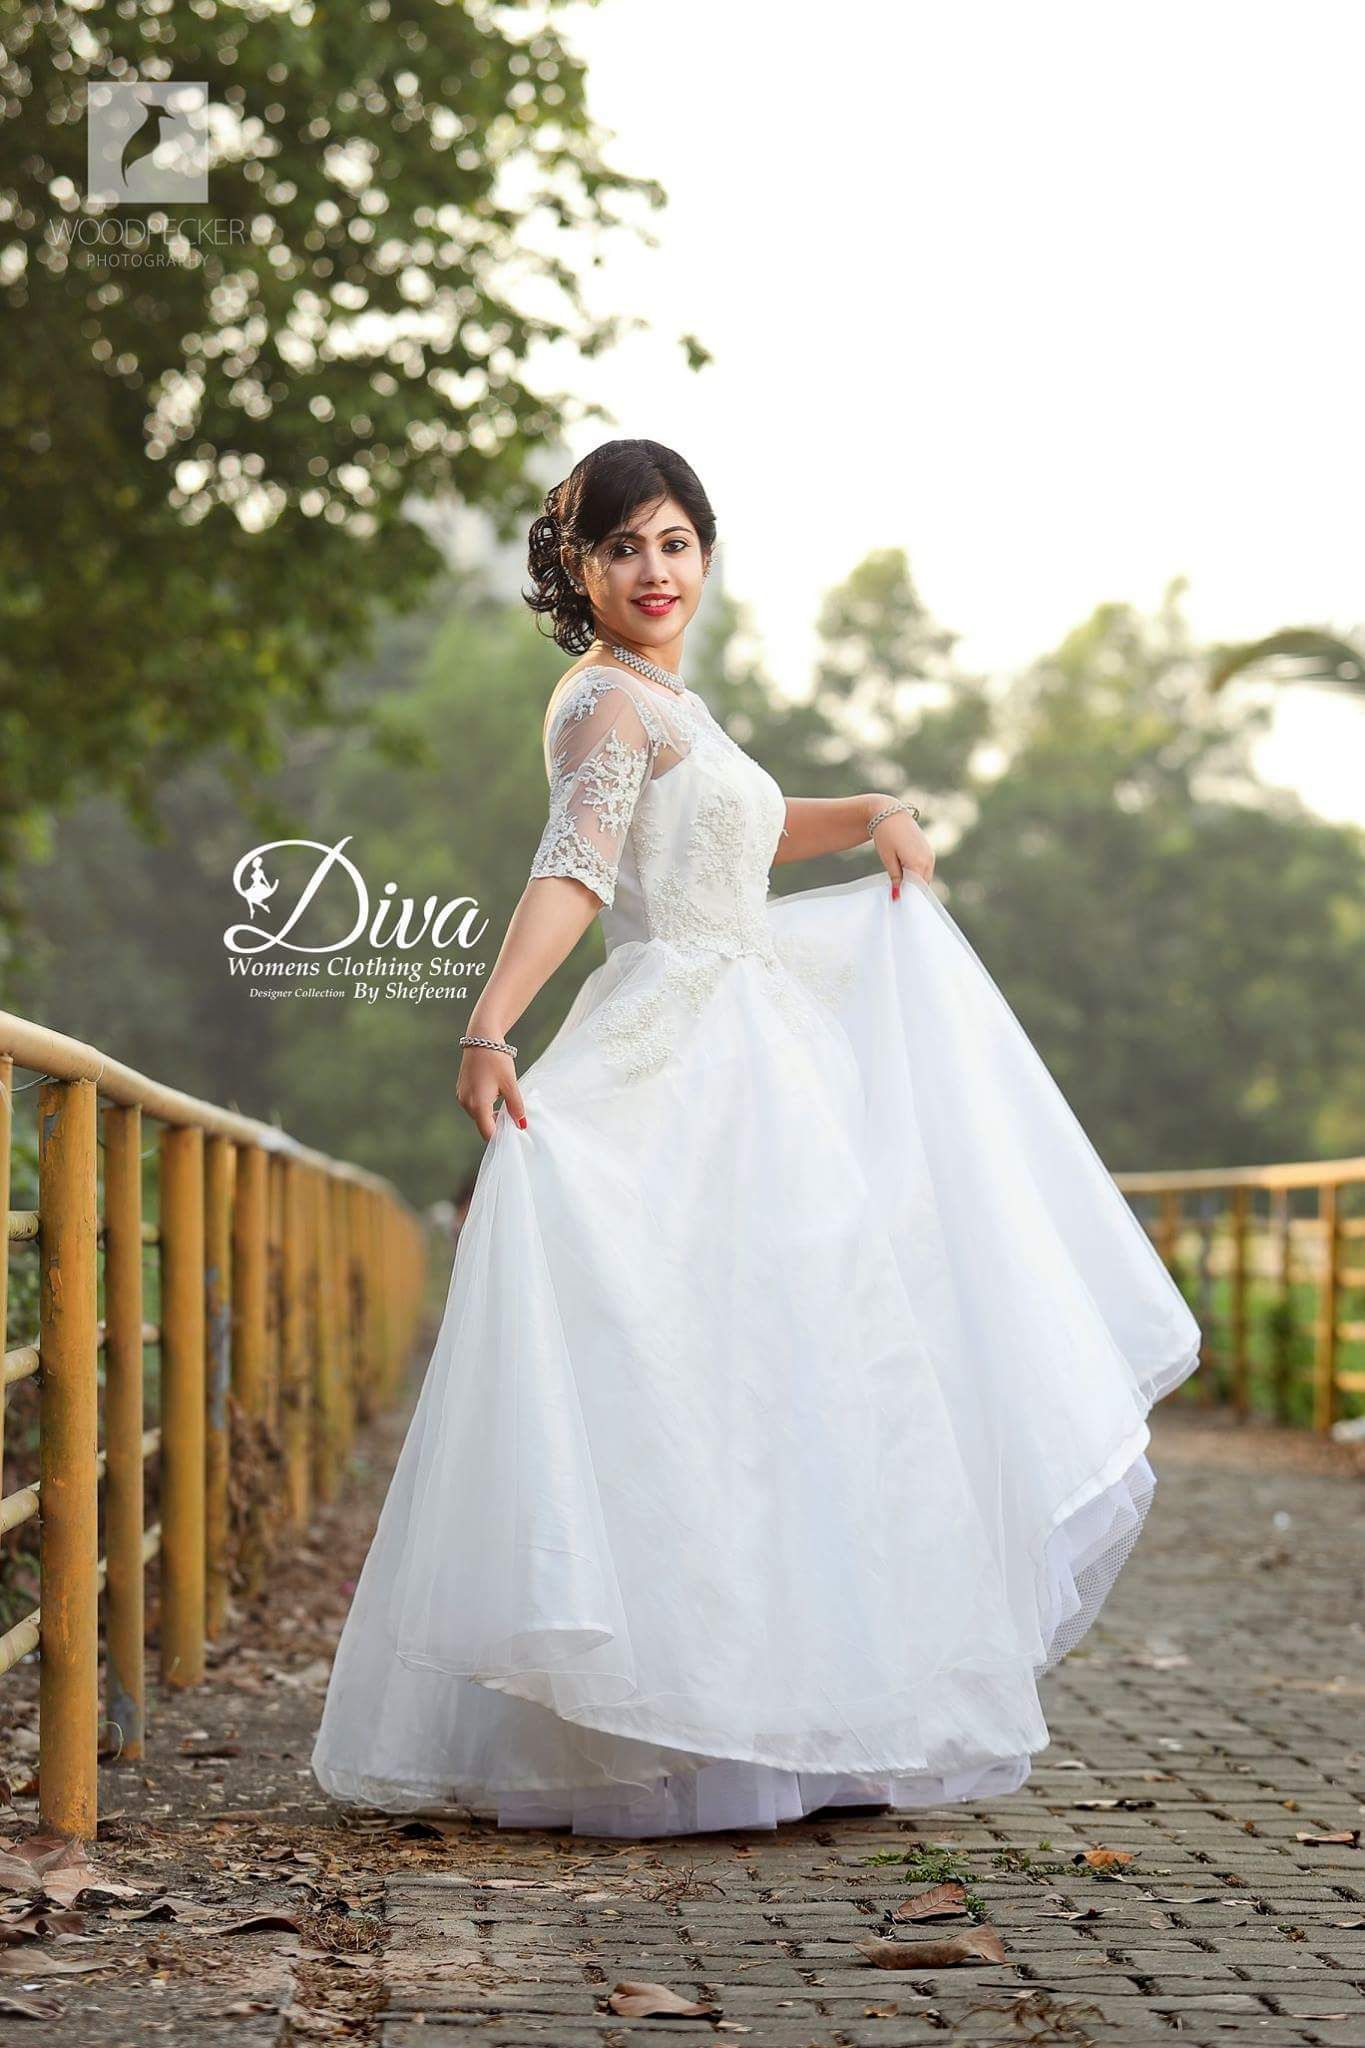 Christian Wedding Dress In Kerala Wedding Dress In The World,Middle Aged Classy Summer Wedding Guest Dresses